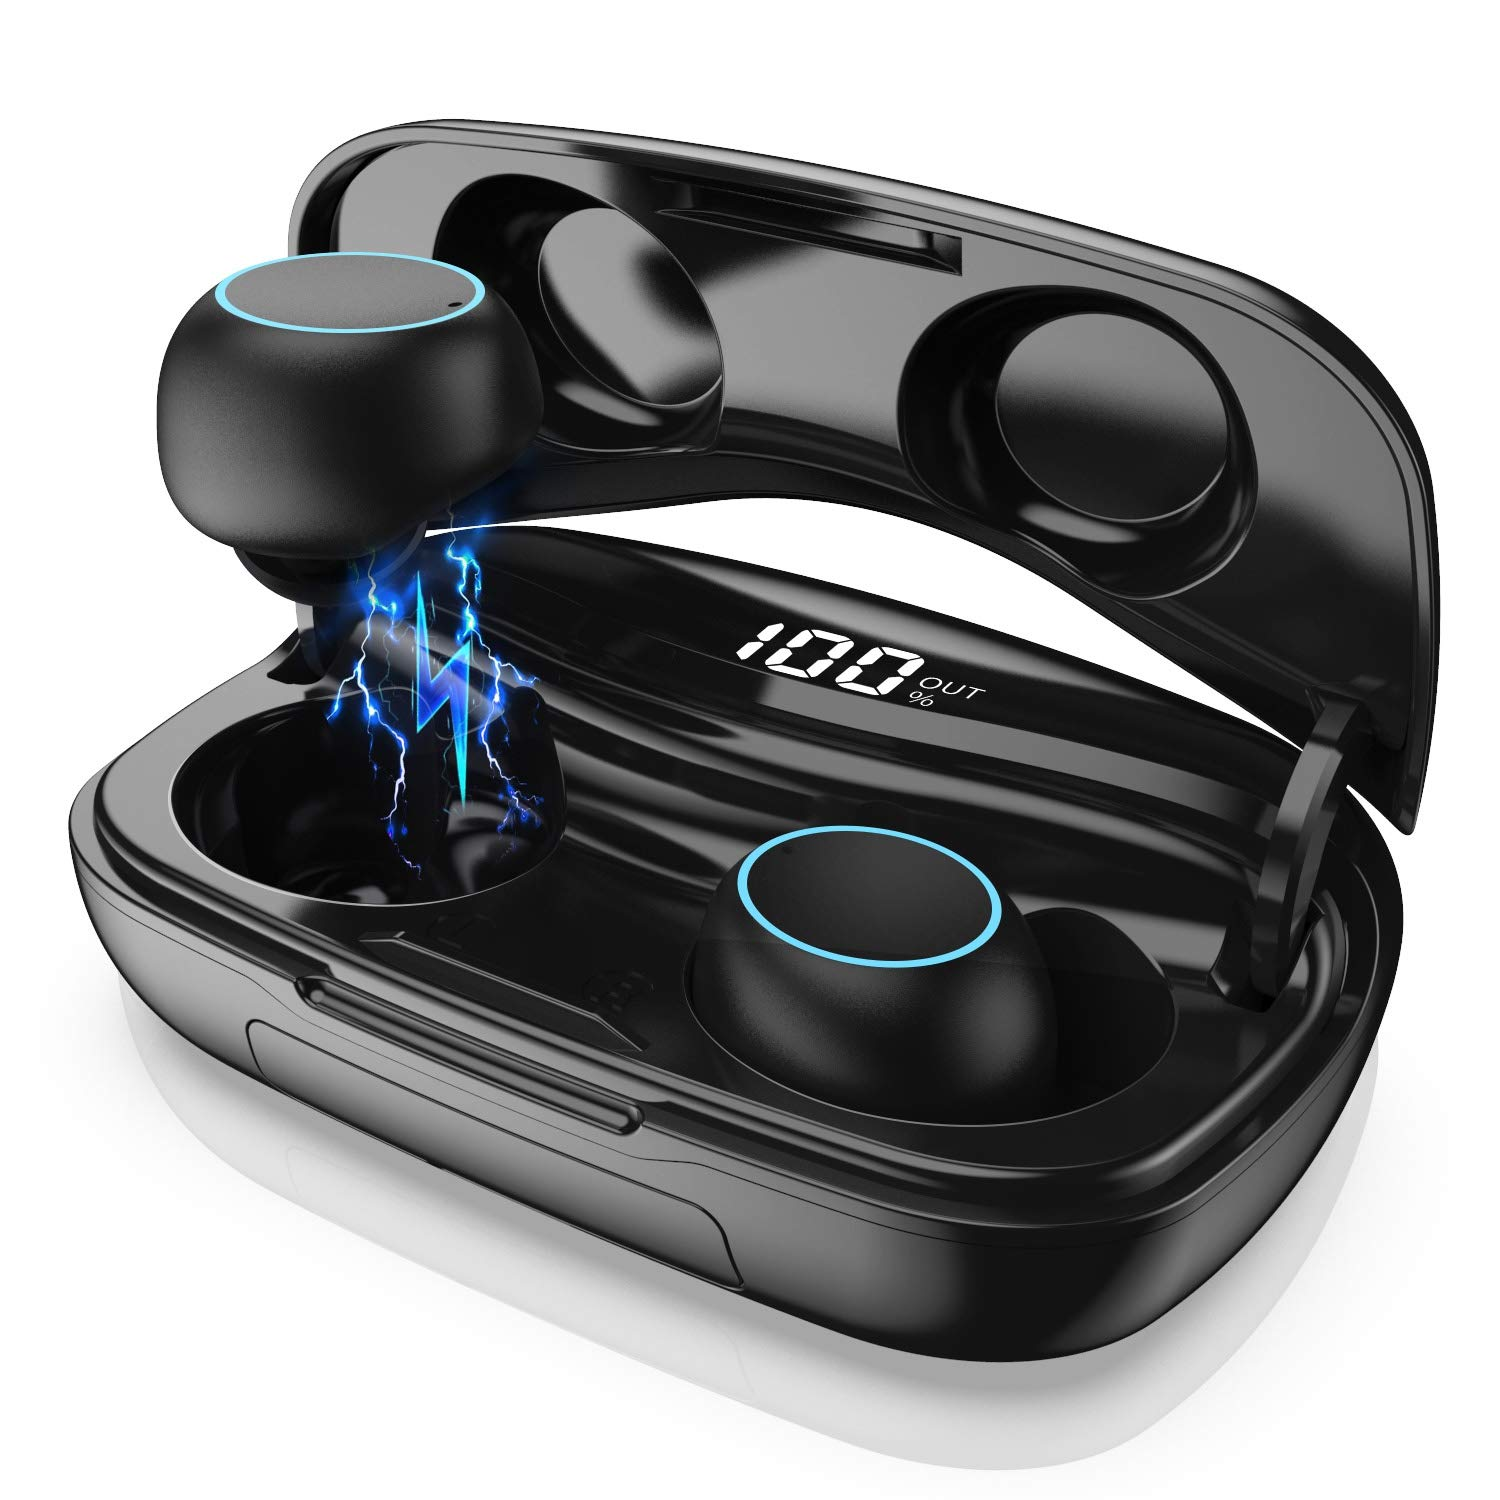 Wireless Earbuds, Bluetooth 5.0 Wireless Headphones with 3500mAh Charging Case LED Battery Display 60H Playtime, Smart Touch, IPX7 Waterproof Wireless Earphones in-Ear Built-in Mic Headsets for Sport by Gixvdcu